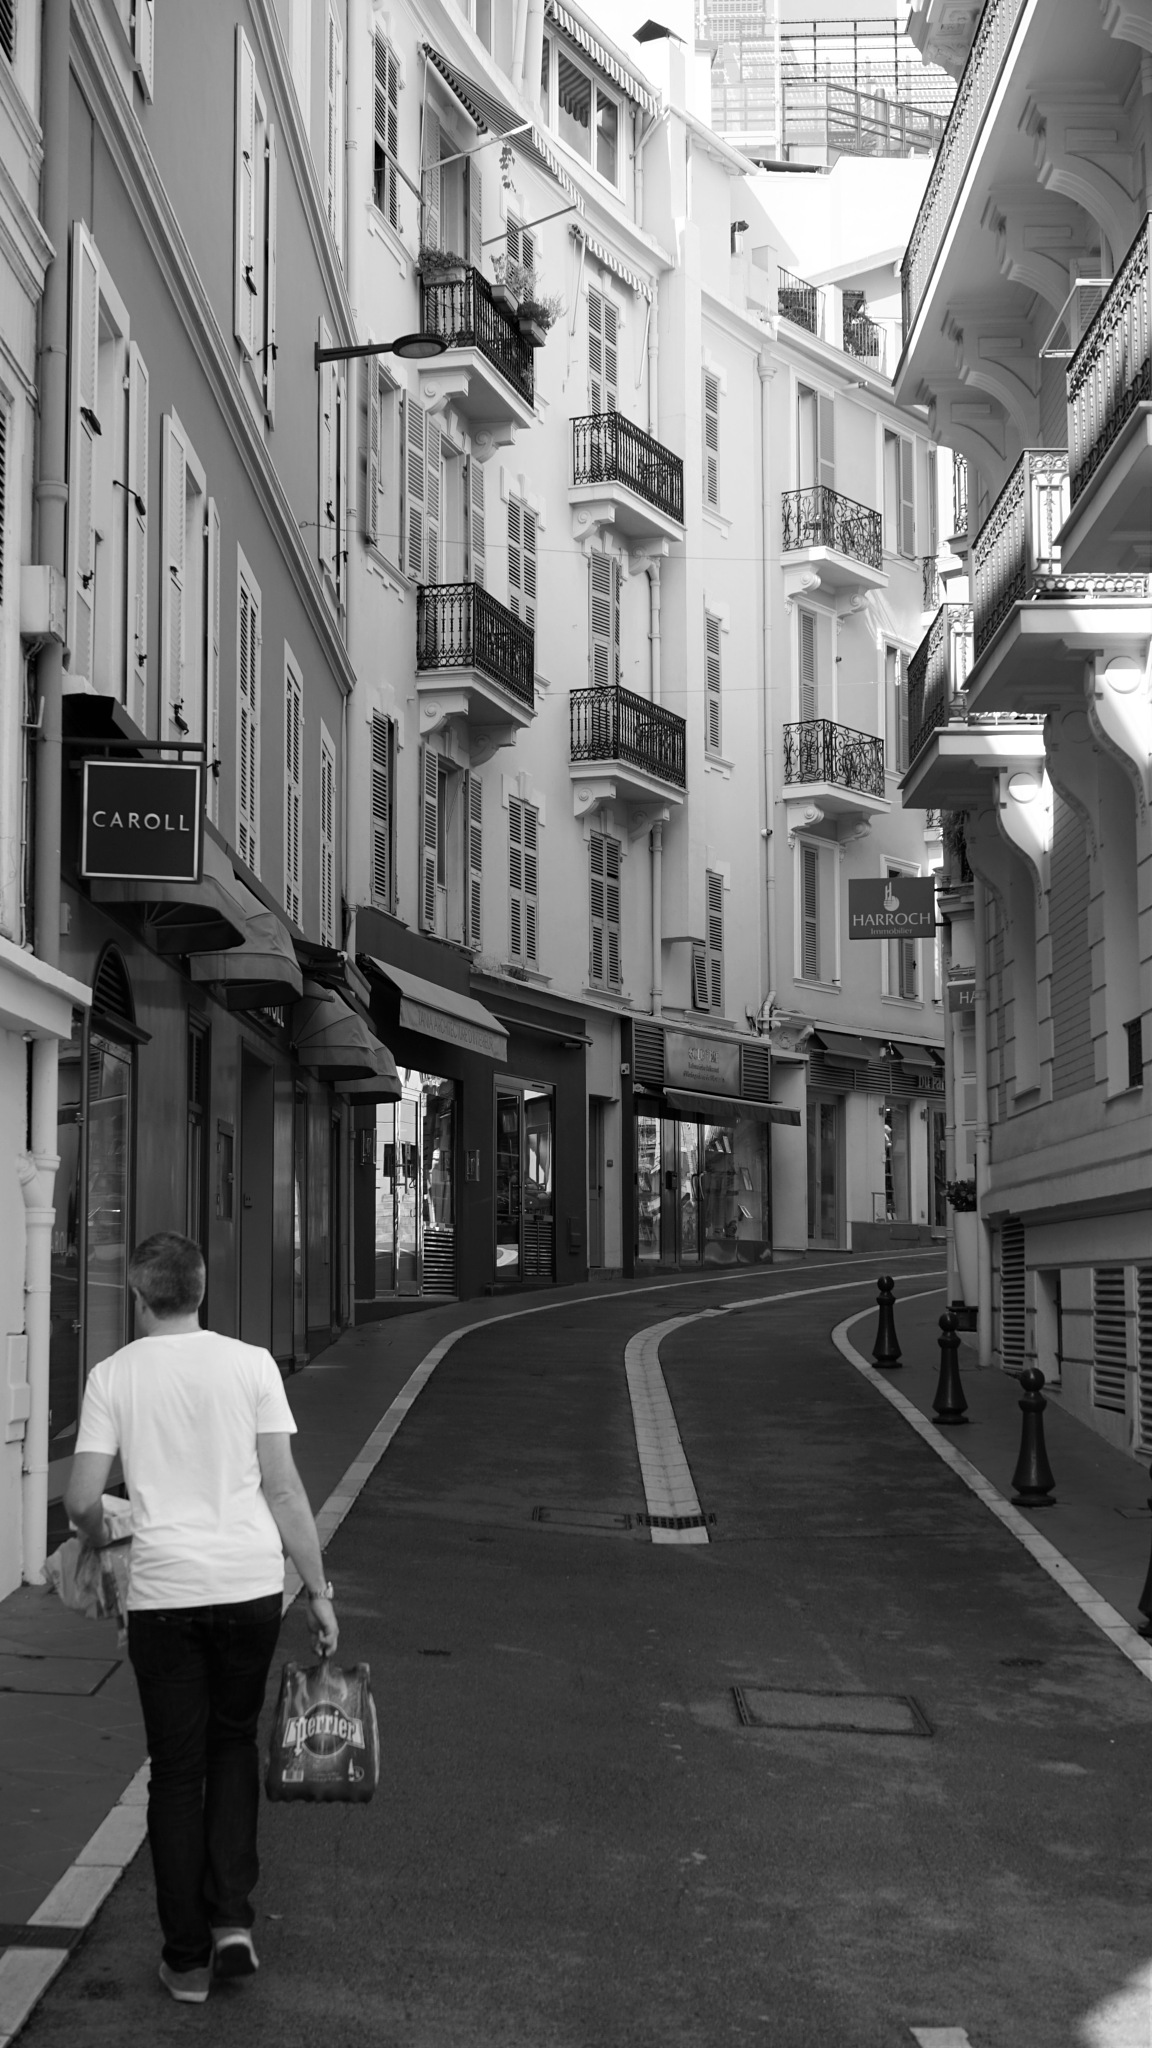 Bringing the shopping home, Monaco by tony cullen